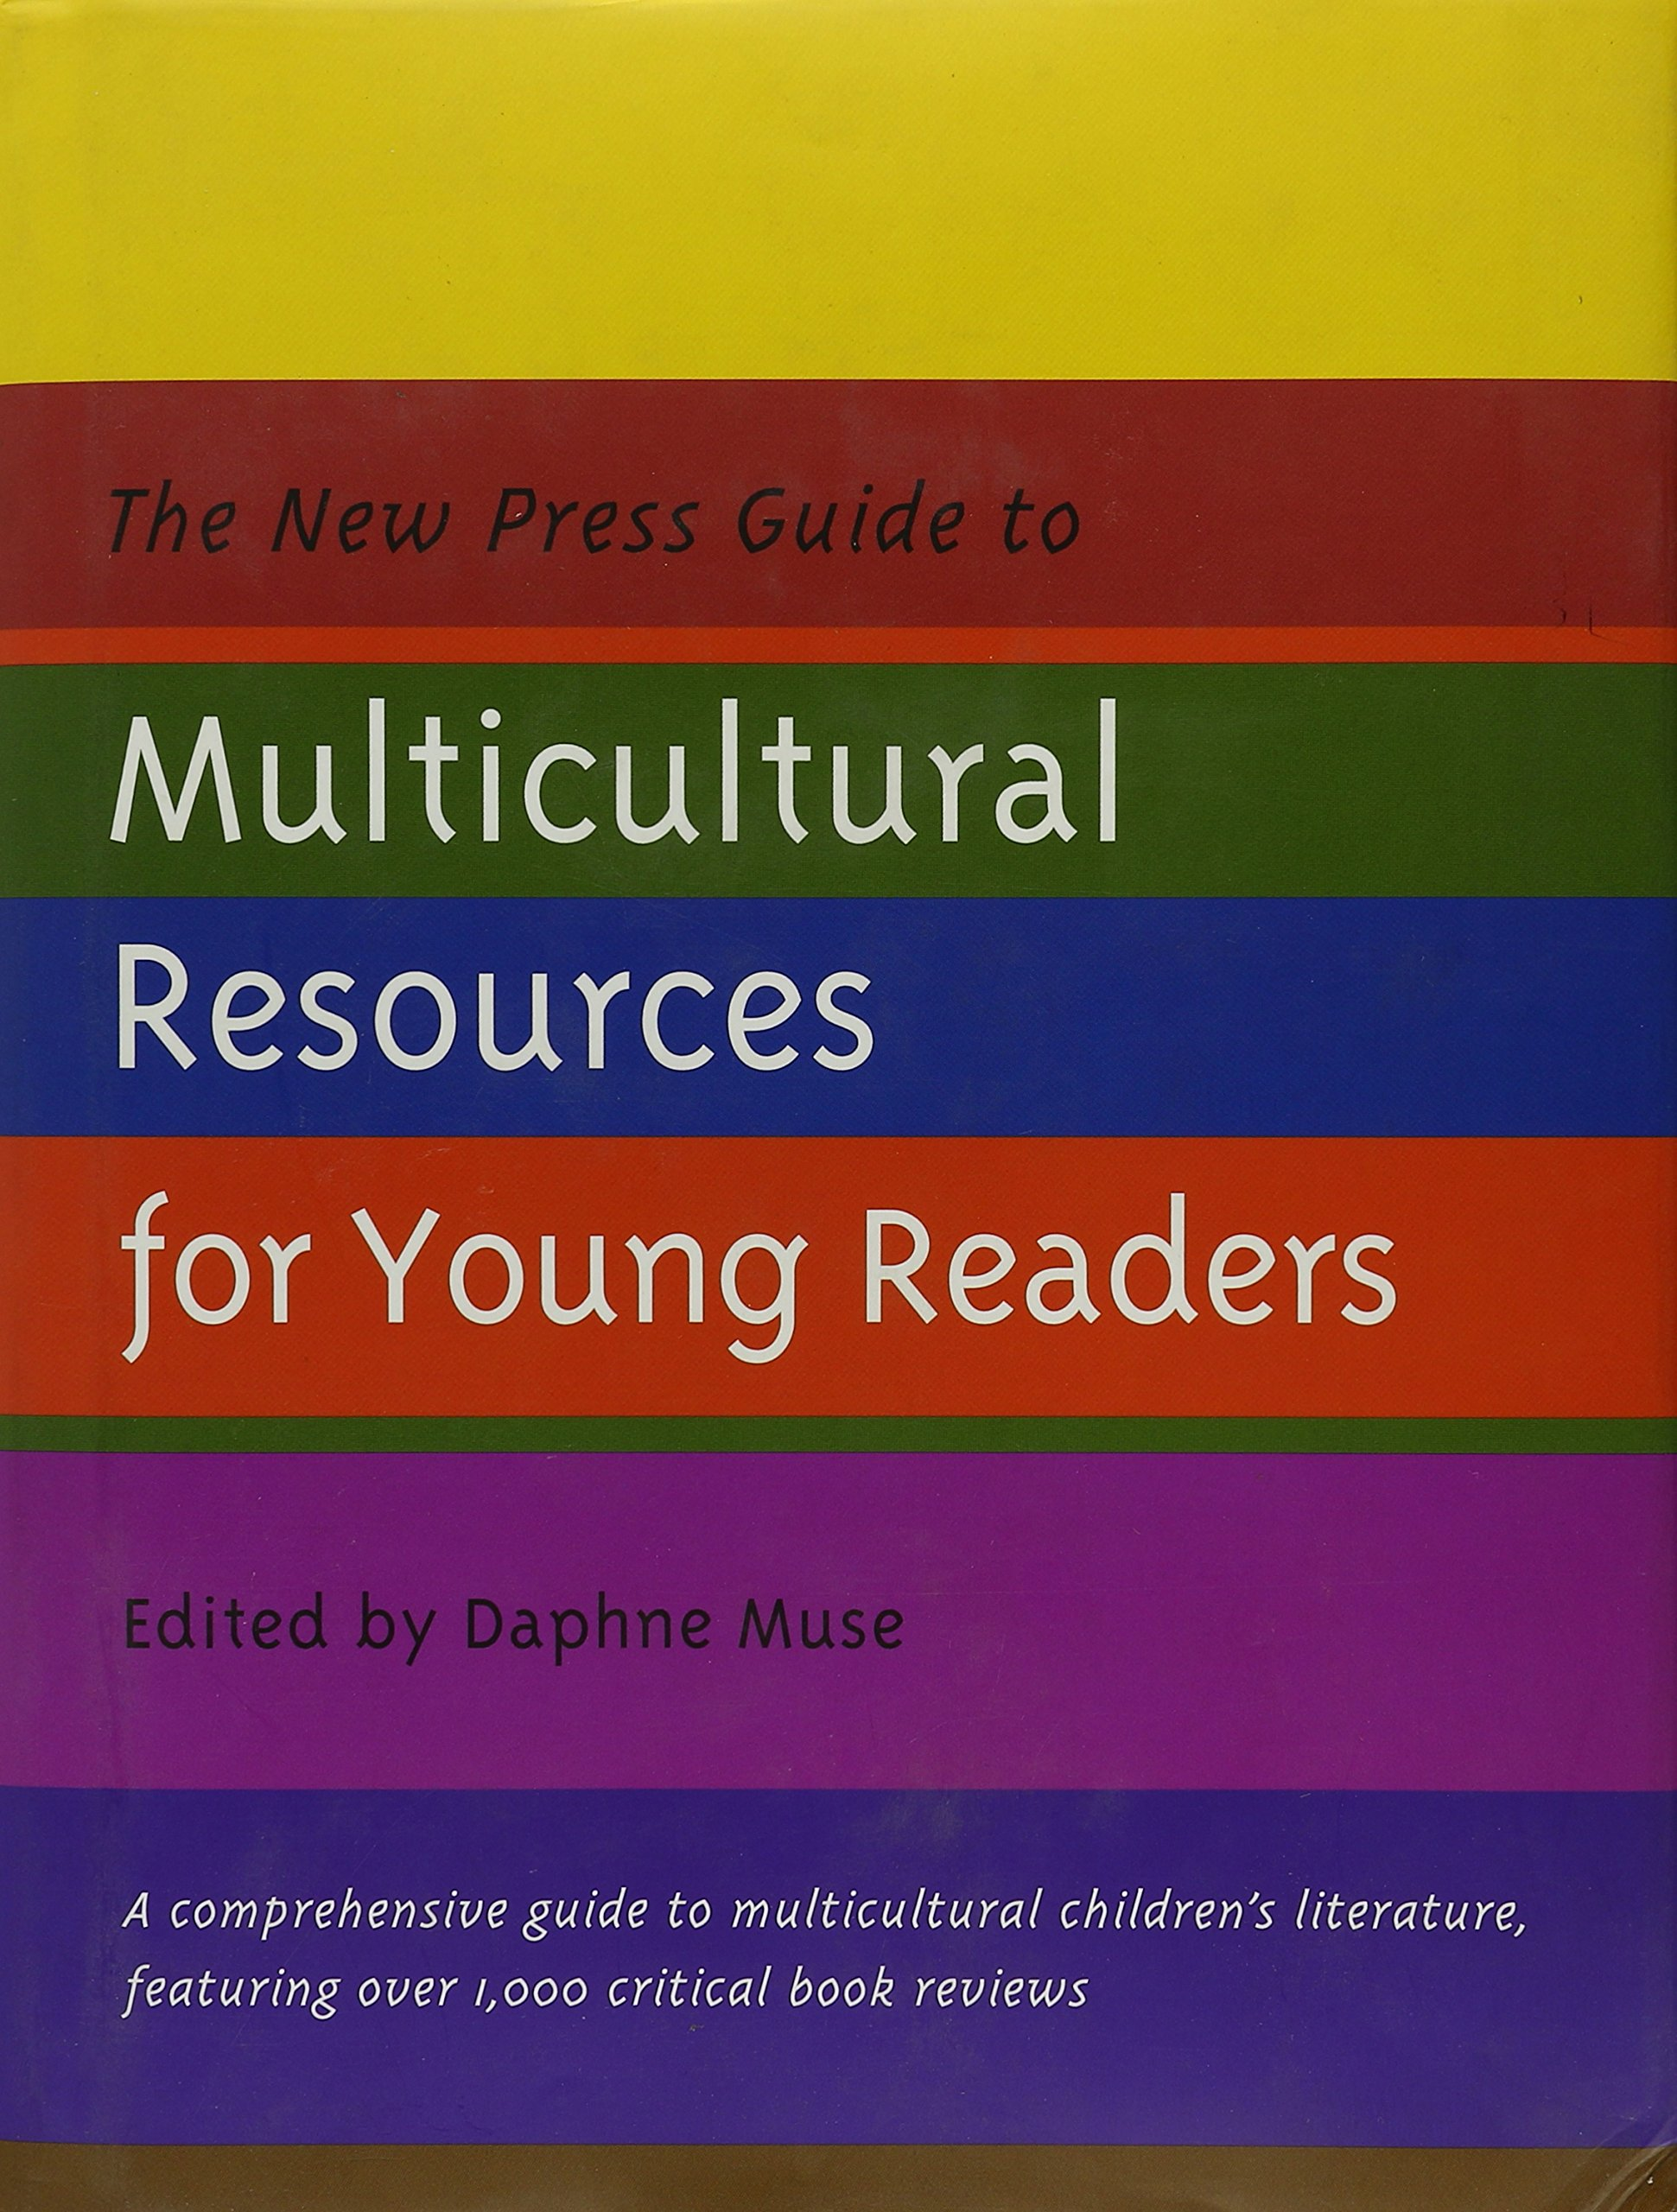 the new press guide to multicultural resources for young readers the new press guide to multicultural resources for young readers new press daphne muse 9781565843394 com books